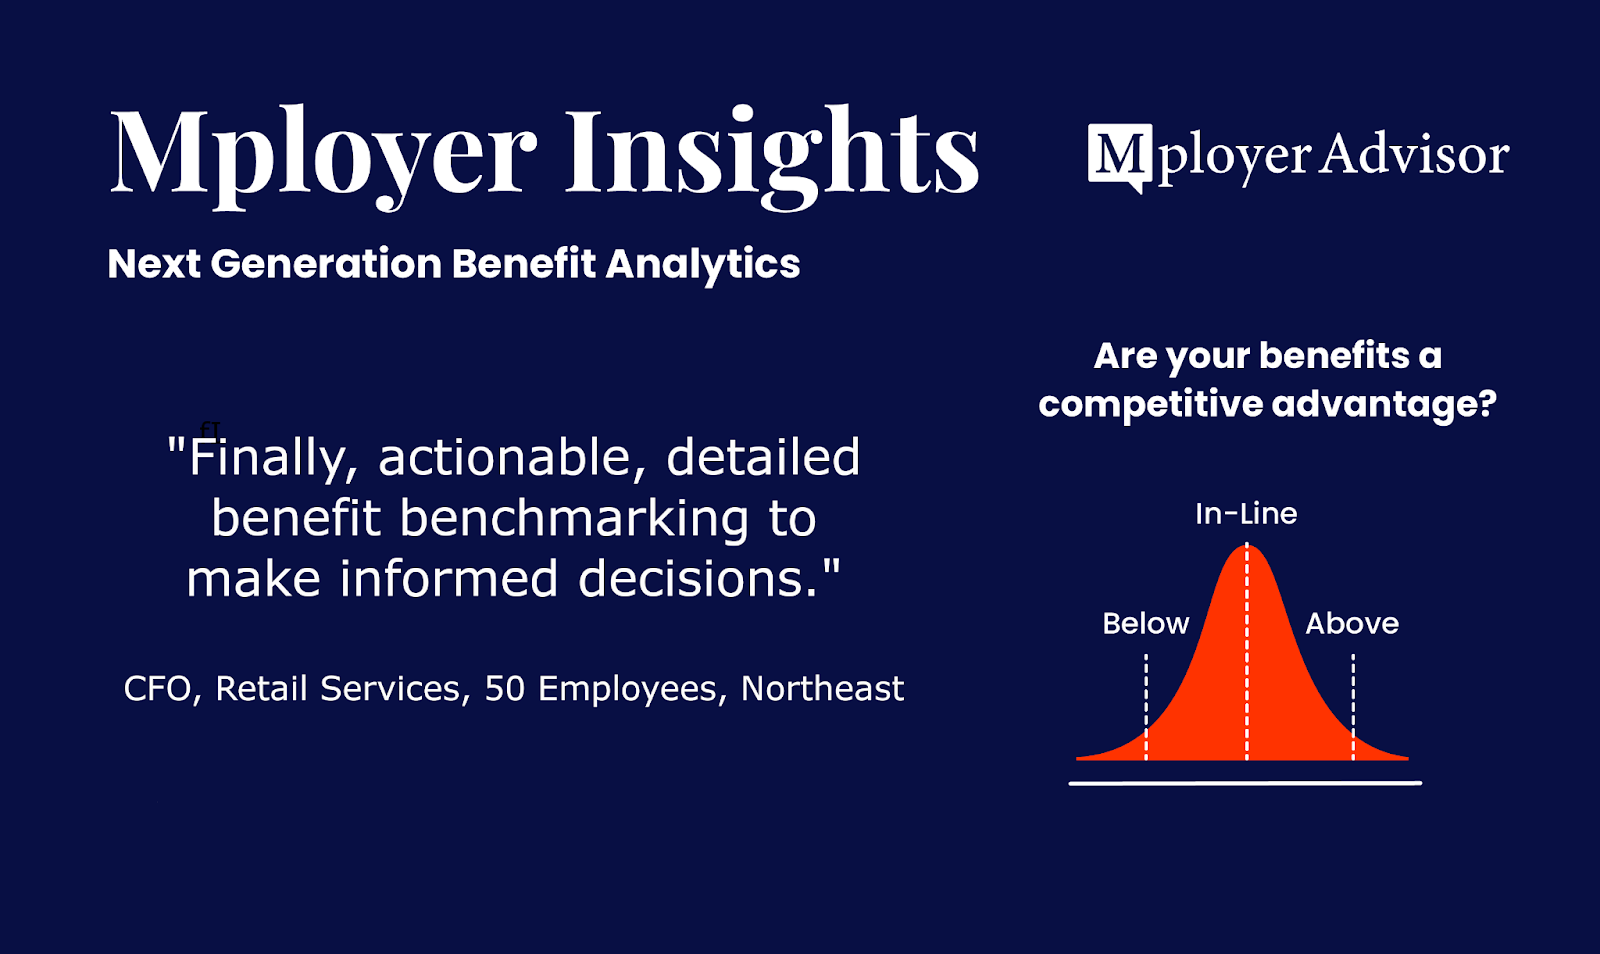 mployer-insights-report-1